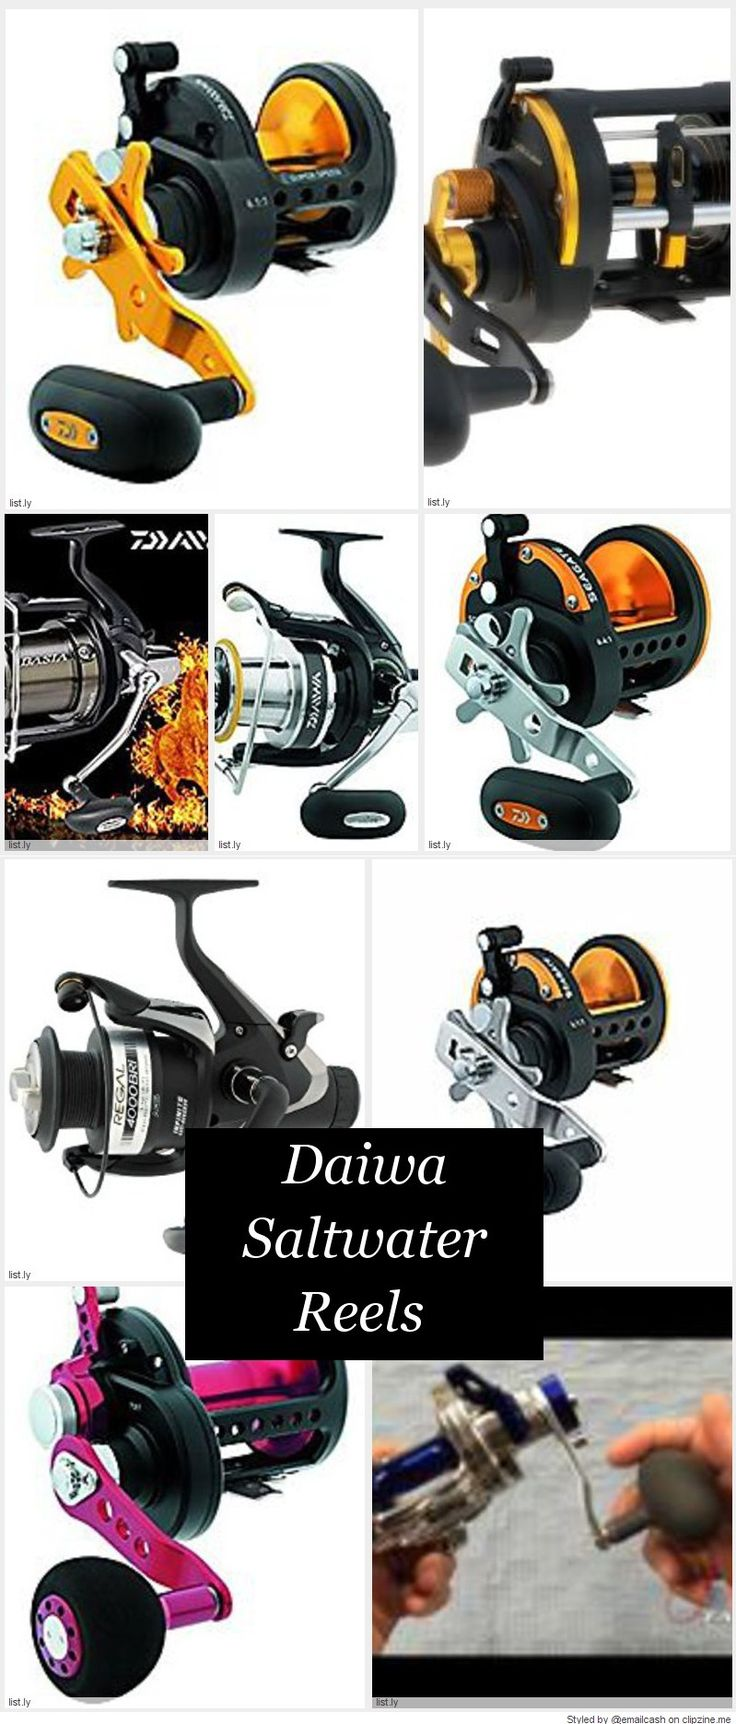 These Daiwa saltwater reels are made with a corrosion-proof composite frame and side plates. It has an aluminum spool and a centrifugal brake system. Seems to work best with with fluorocarbon or monofilament line. The Daiwa saltwater reels are the perfect reel if you fish from a boat or from a pier.